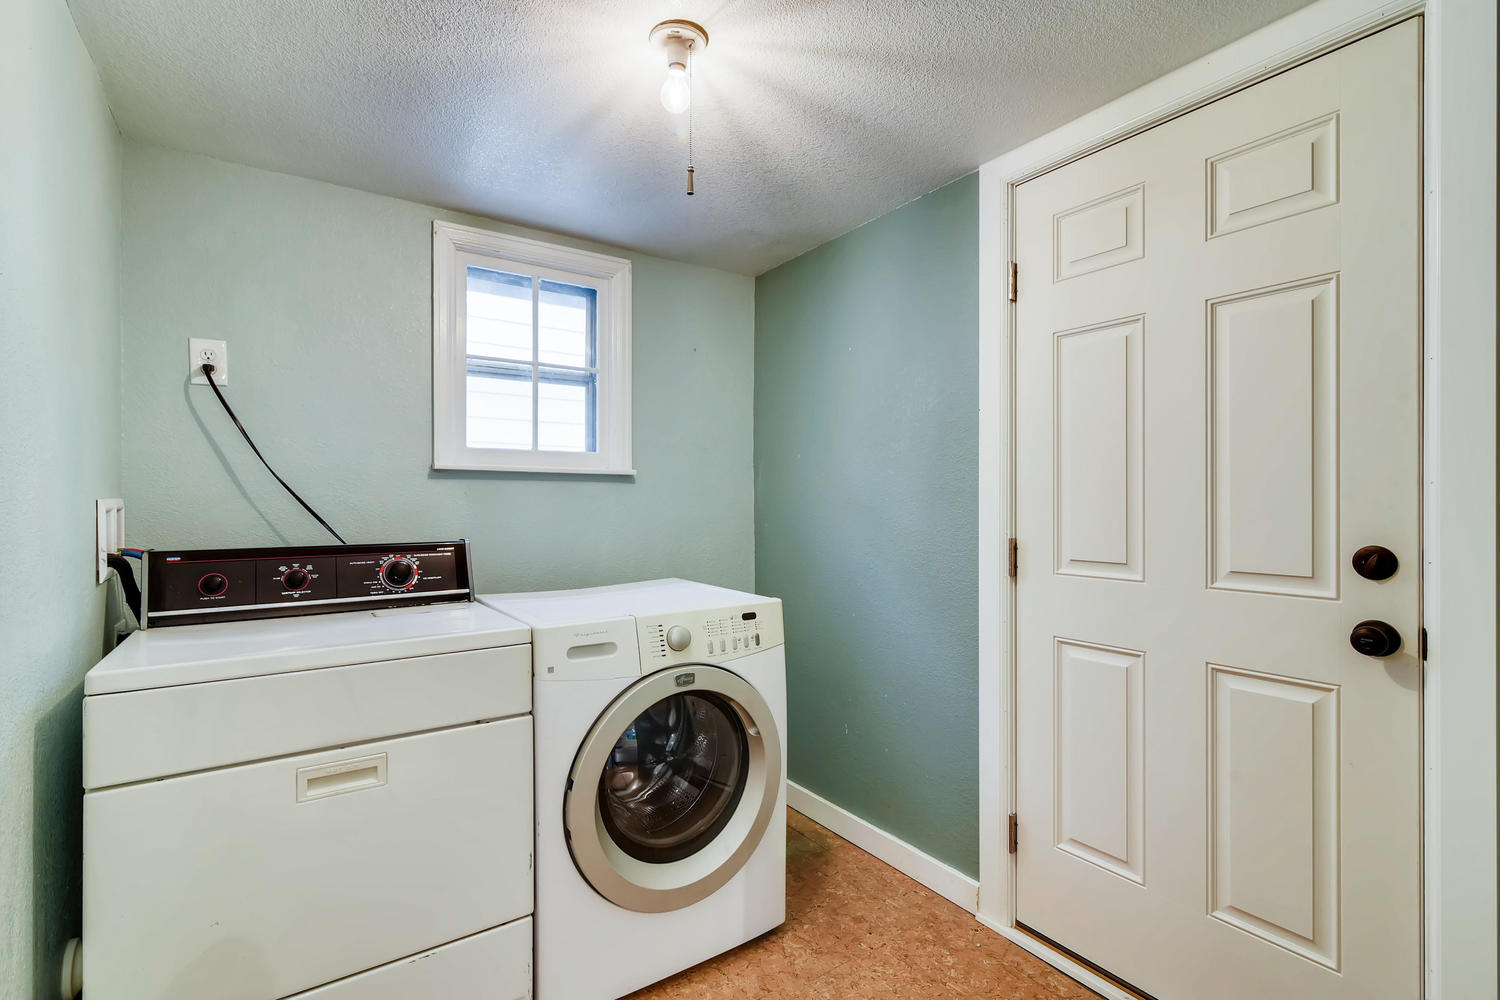 REAL ESTATE LISTING: 1201 E 1st Street Loveland CO Mud Room